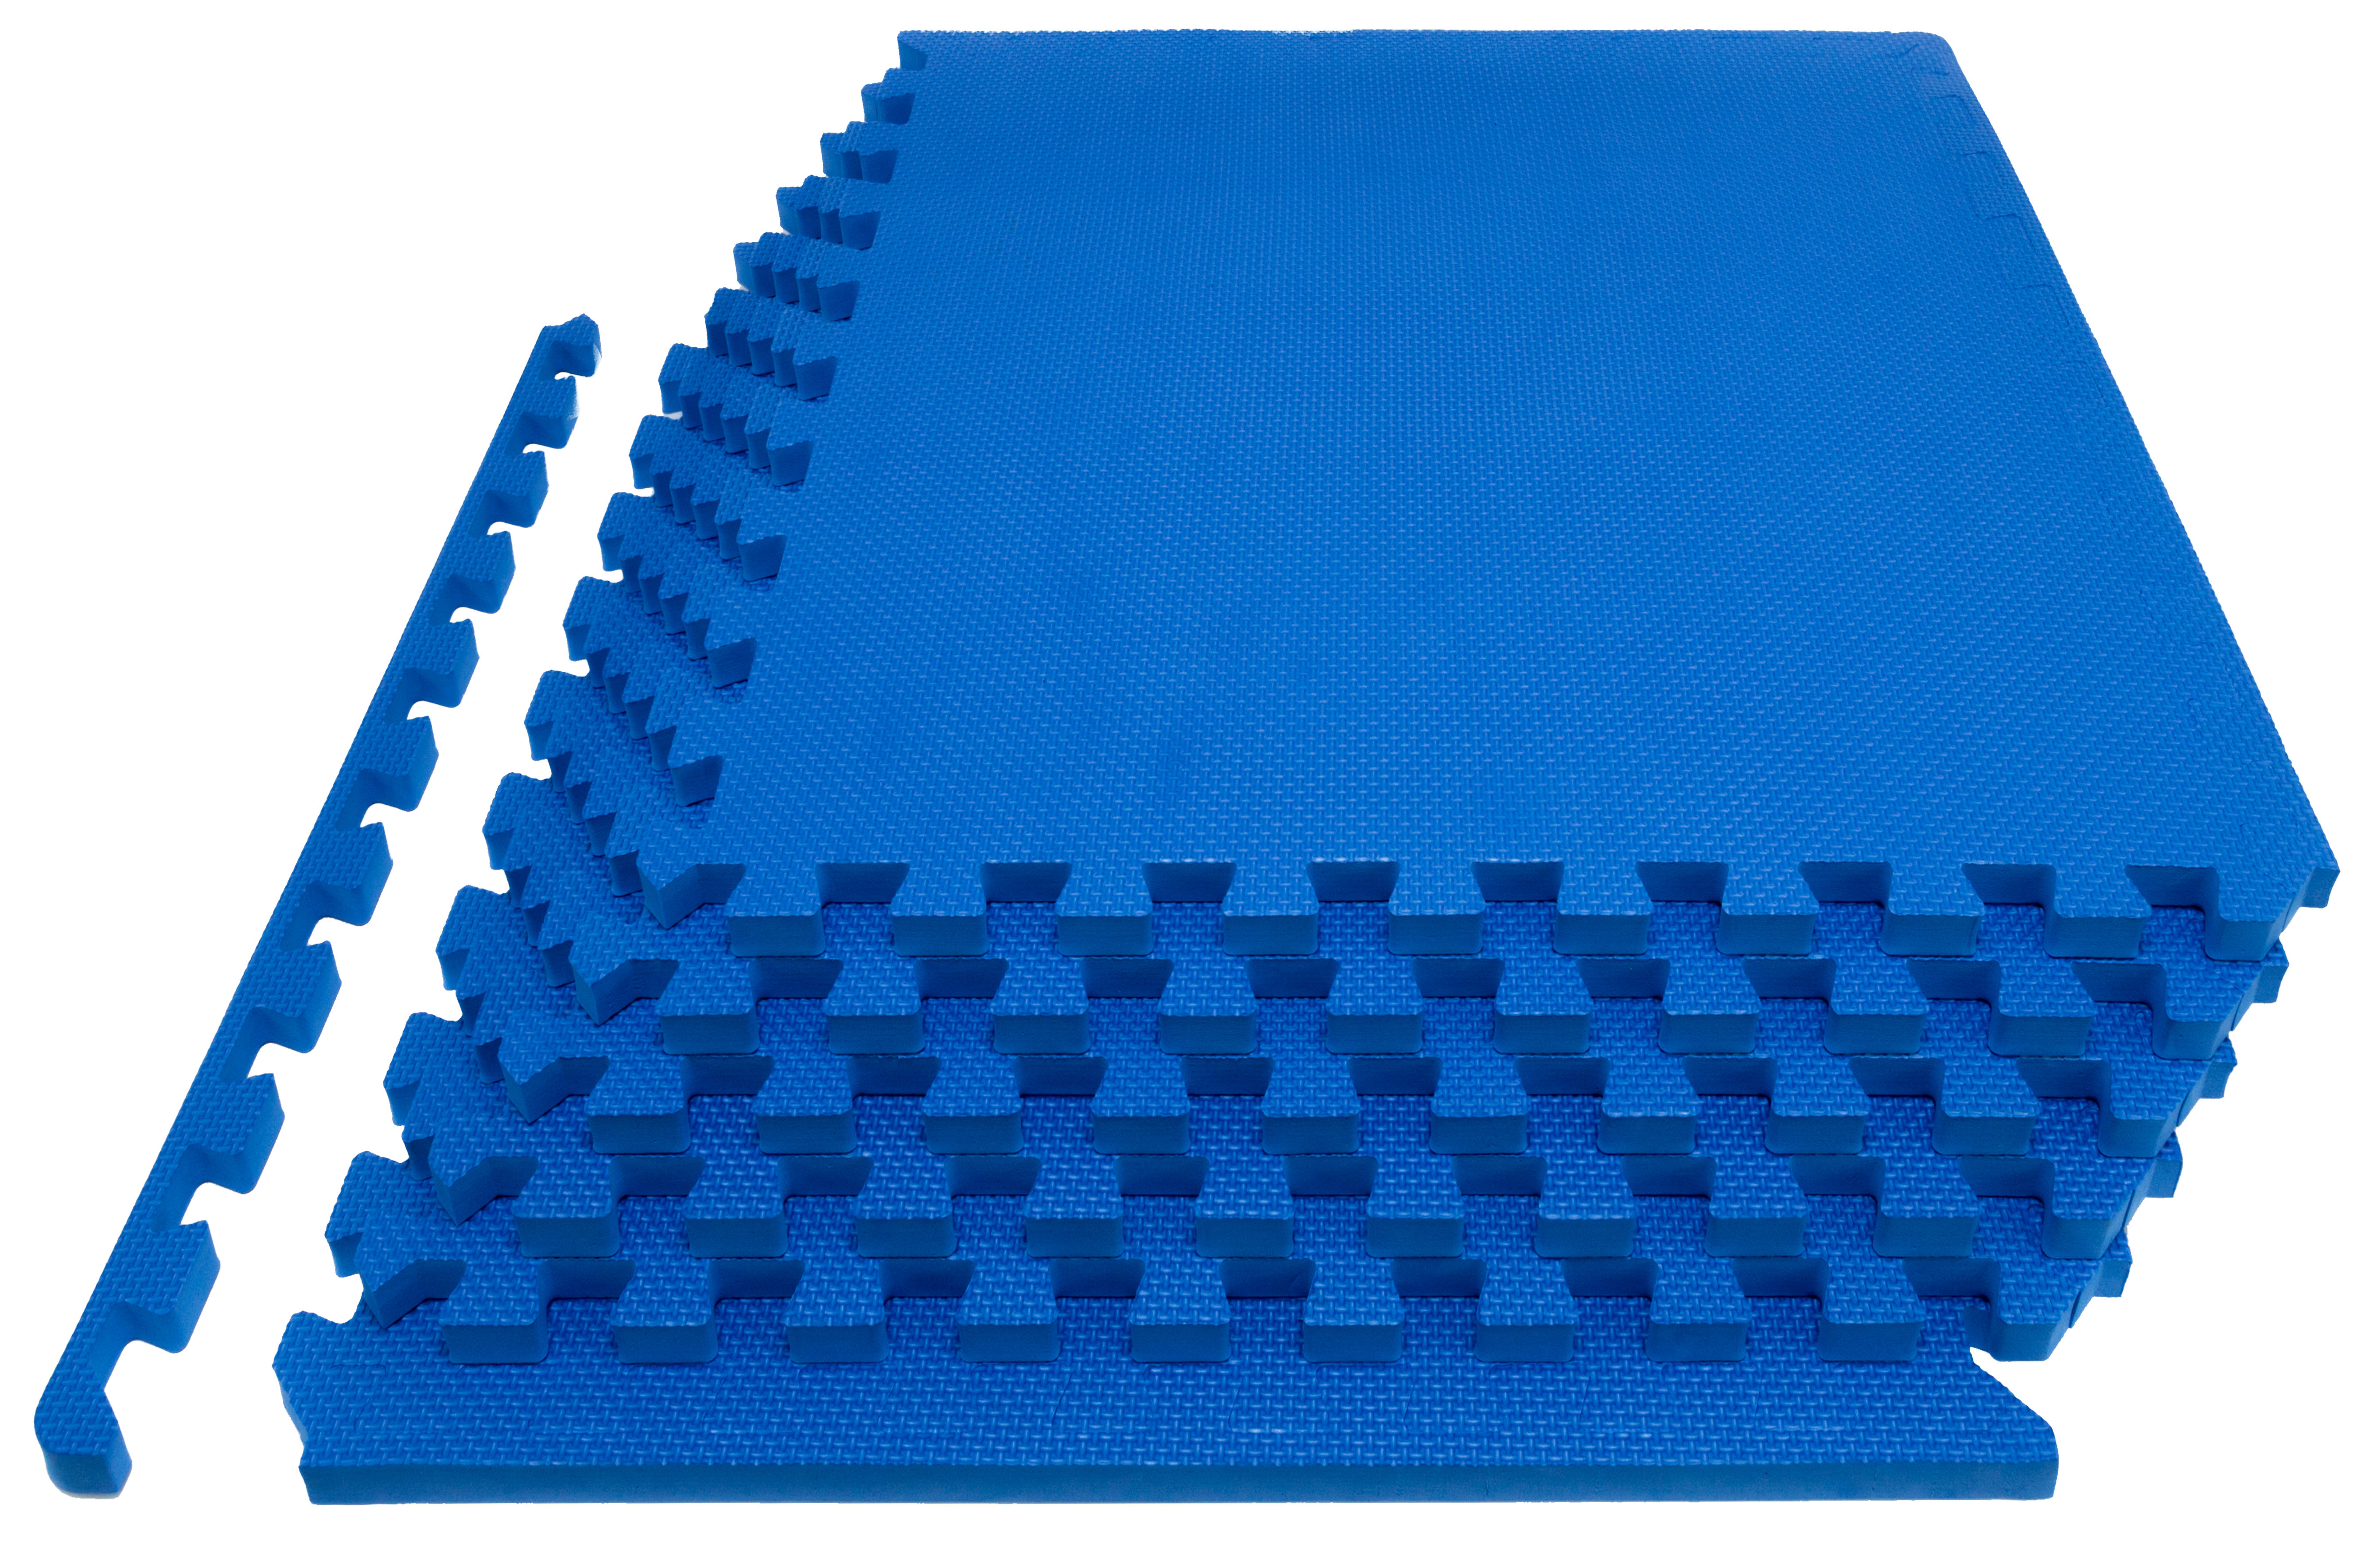 ProSource Extra Thick Puzzle Exercise Mat 3 4 Inch, EVA Foam Interlocking Tiles for Protective, Cushioned Workout... by ProSource